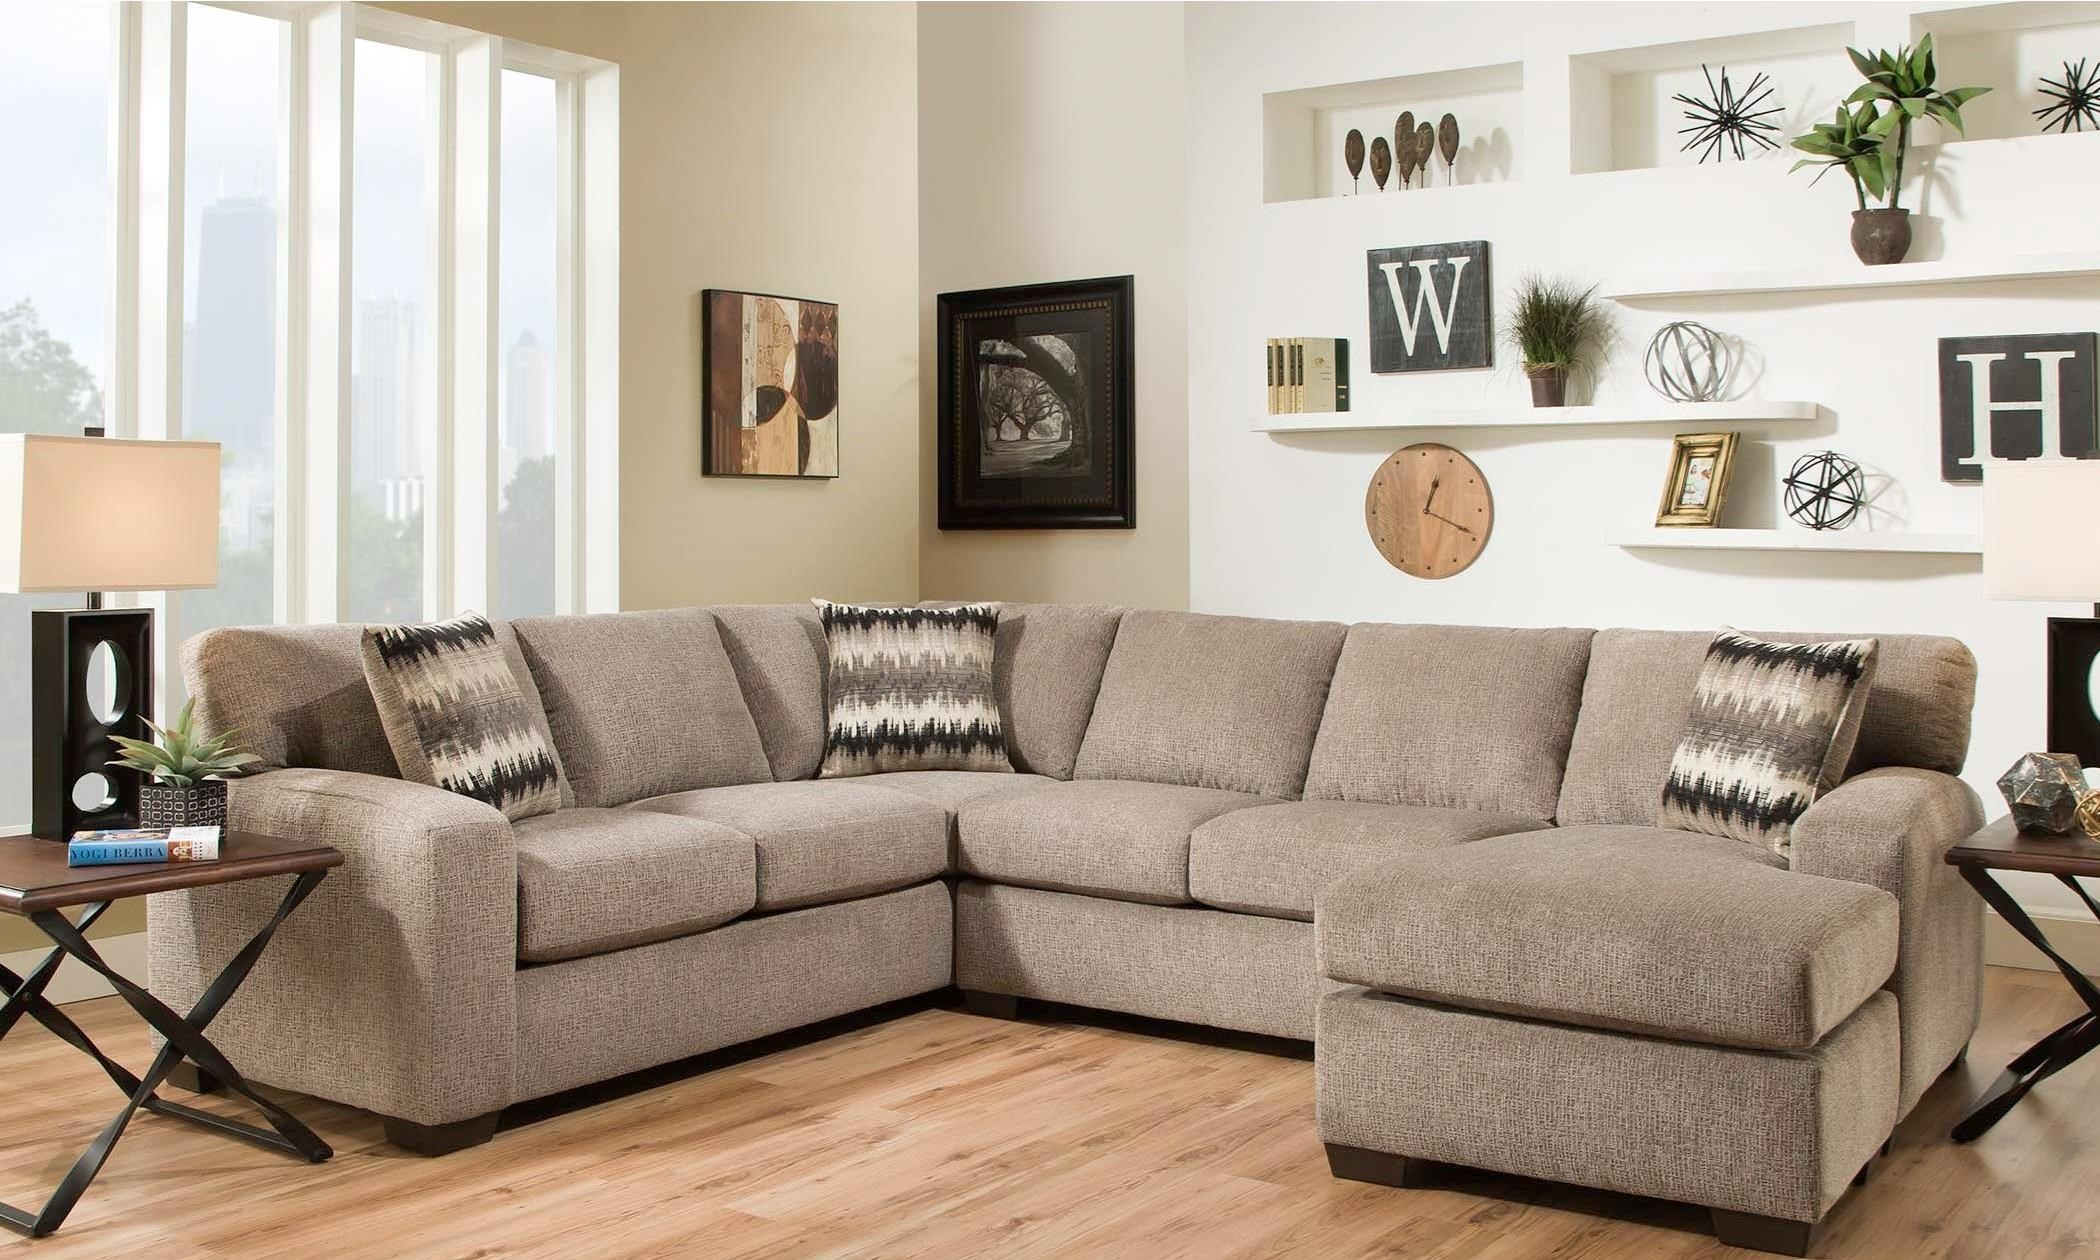 Sectional Sofa   Seats 5